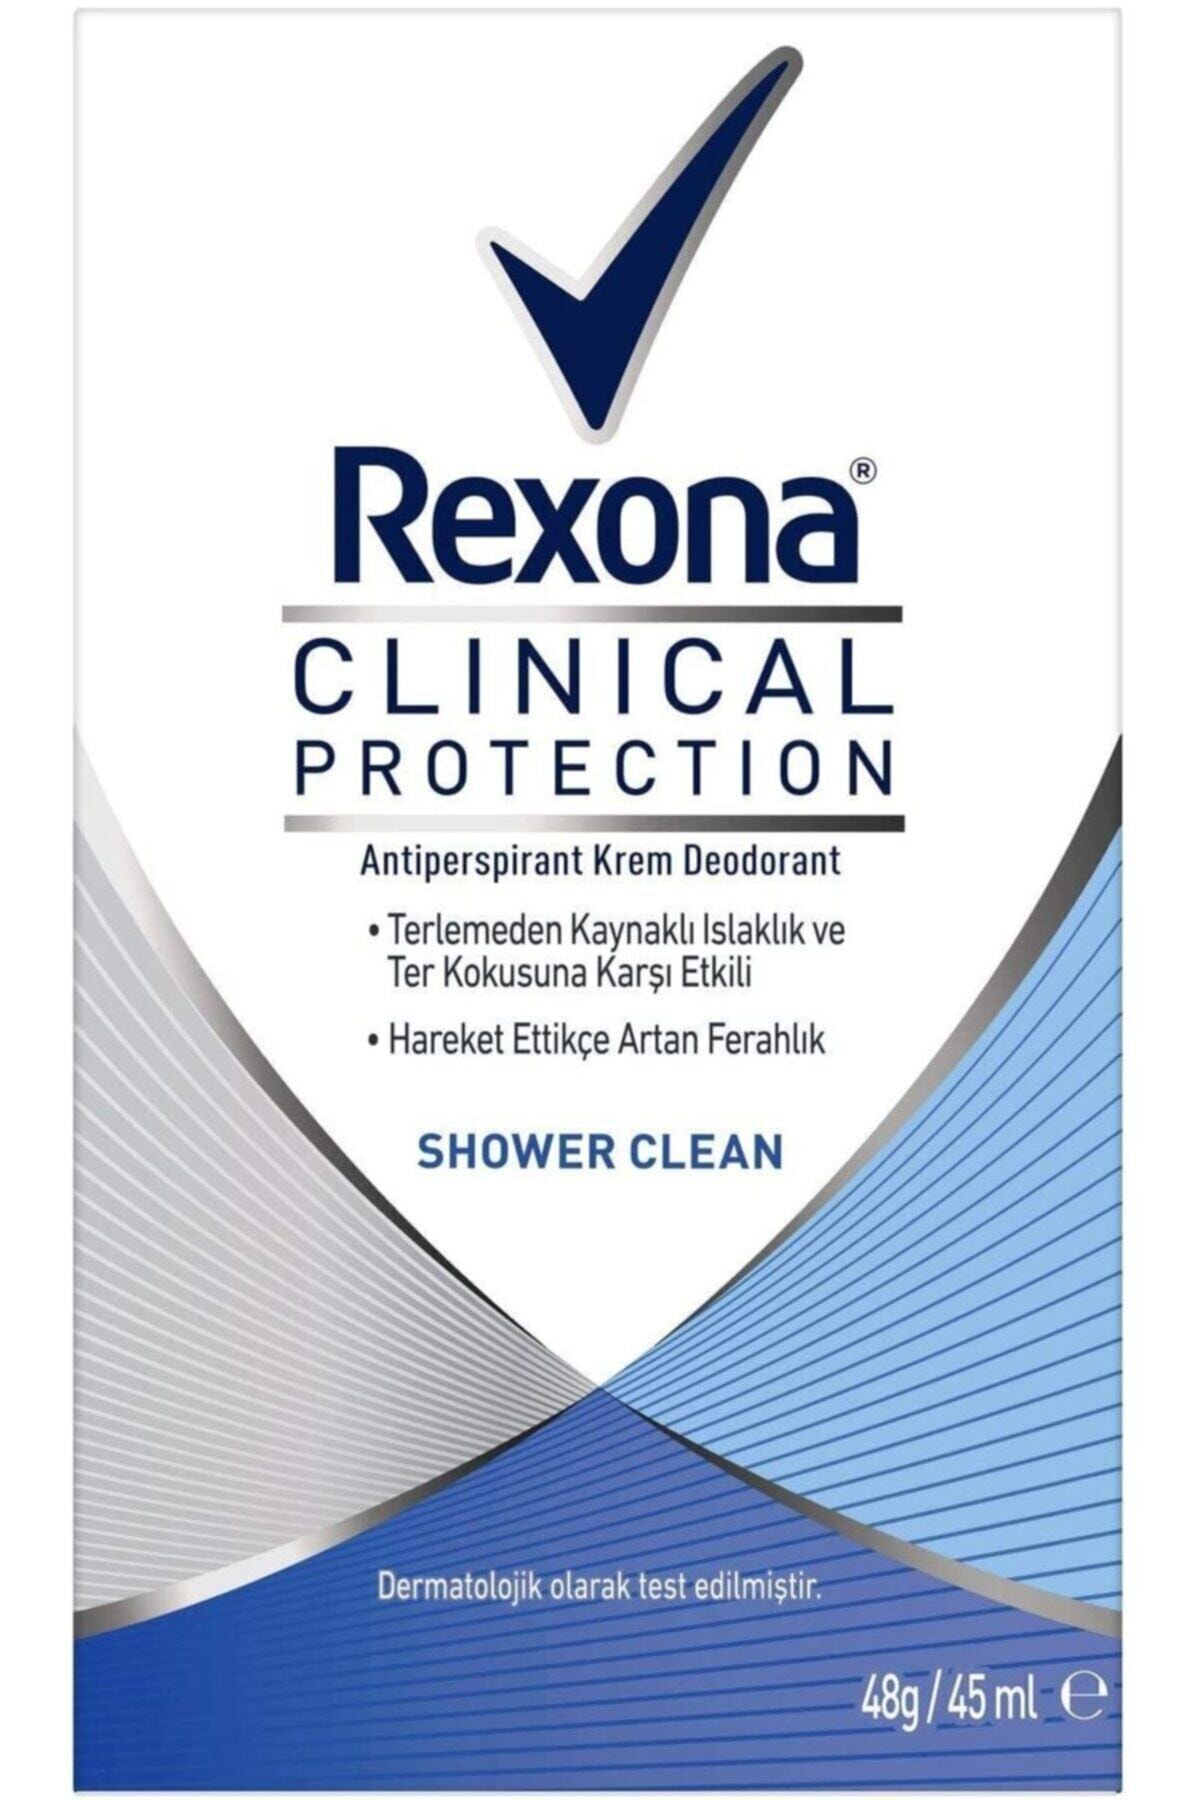 Rexona Clinical Protection Shower Clean Deodorant 45 ml 1